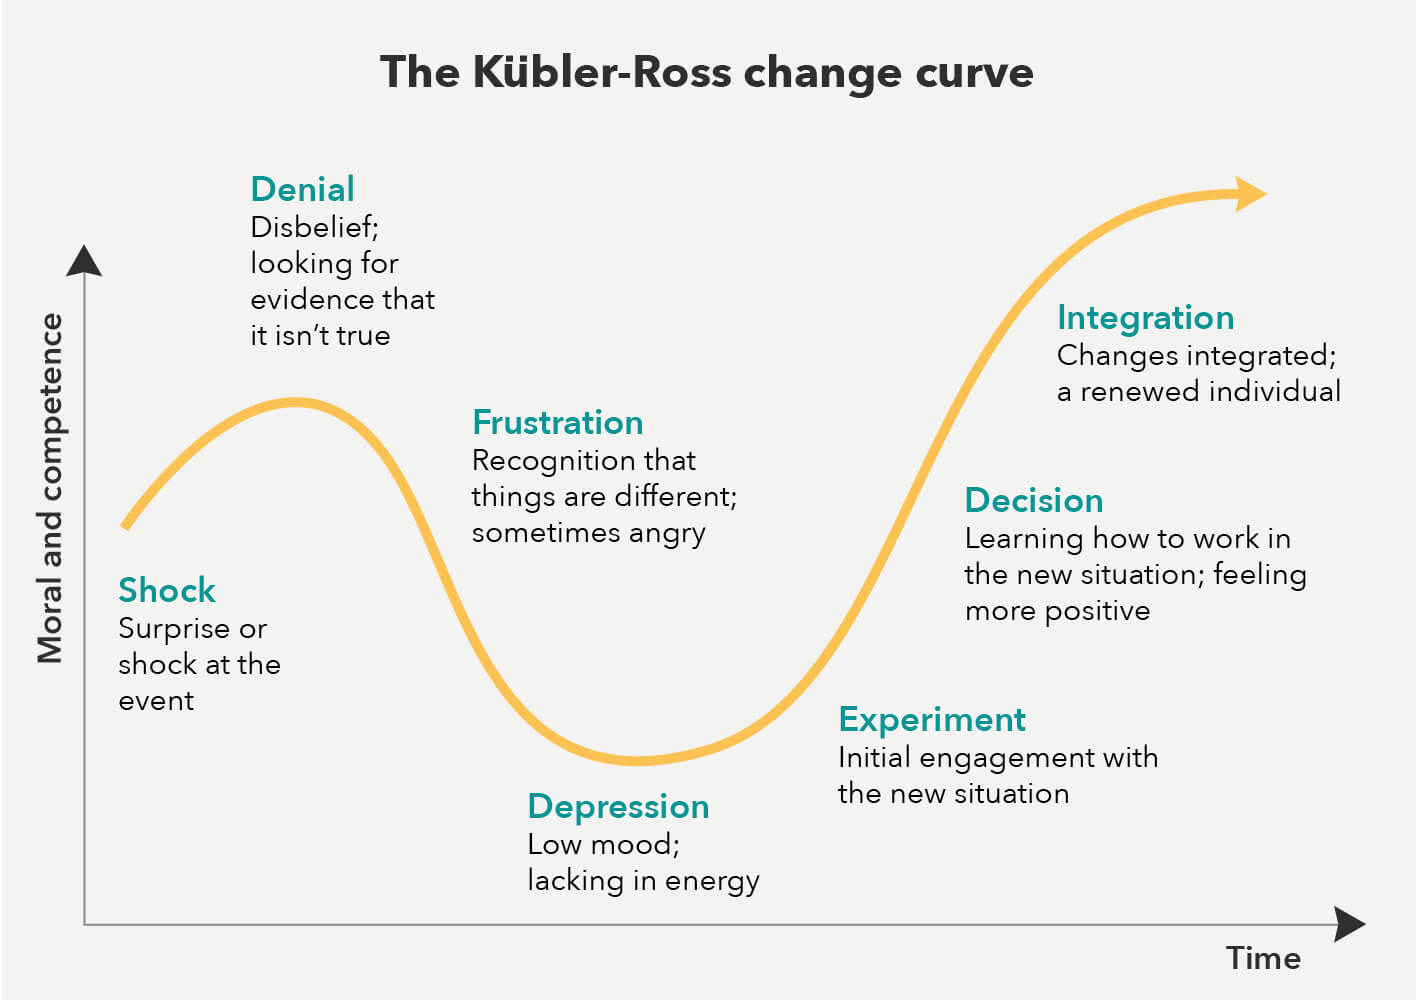 The loss curve